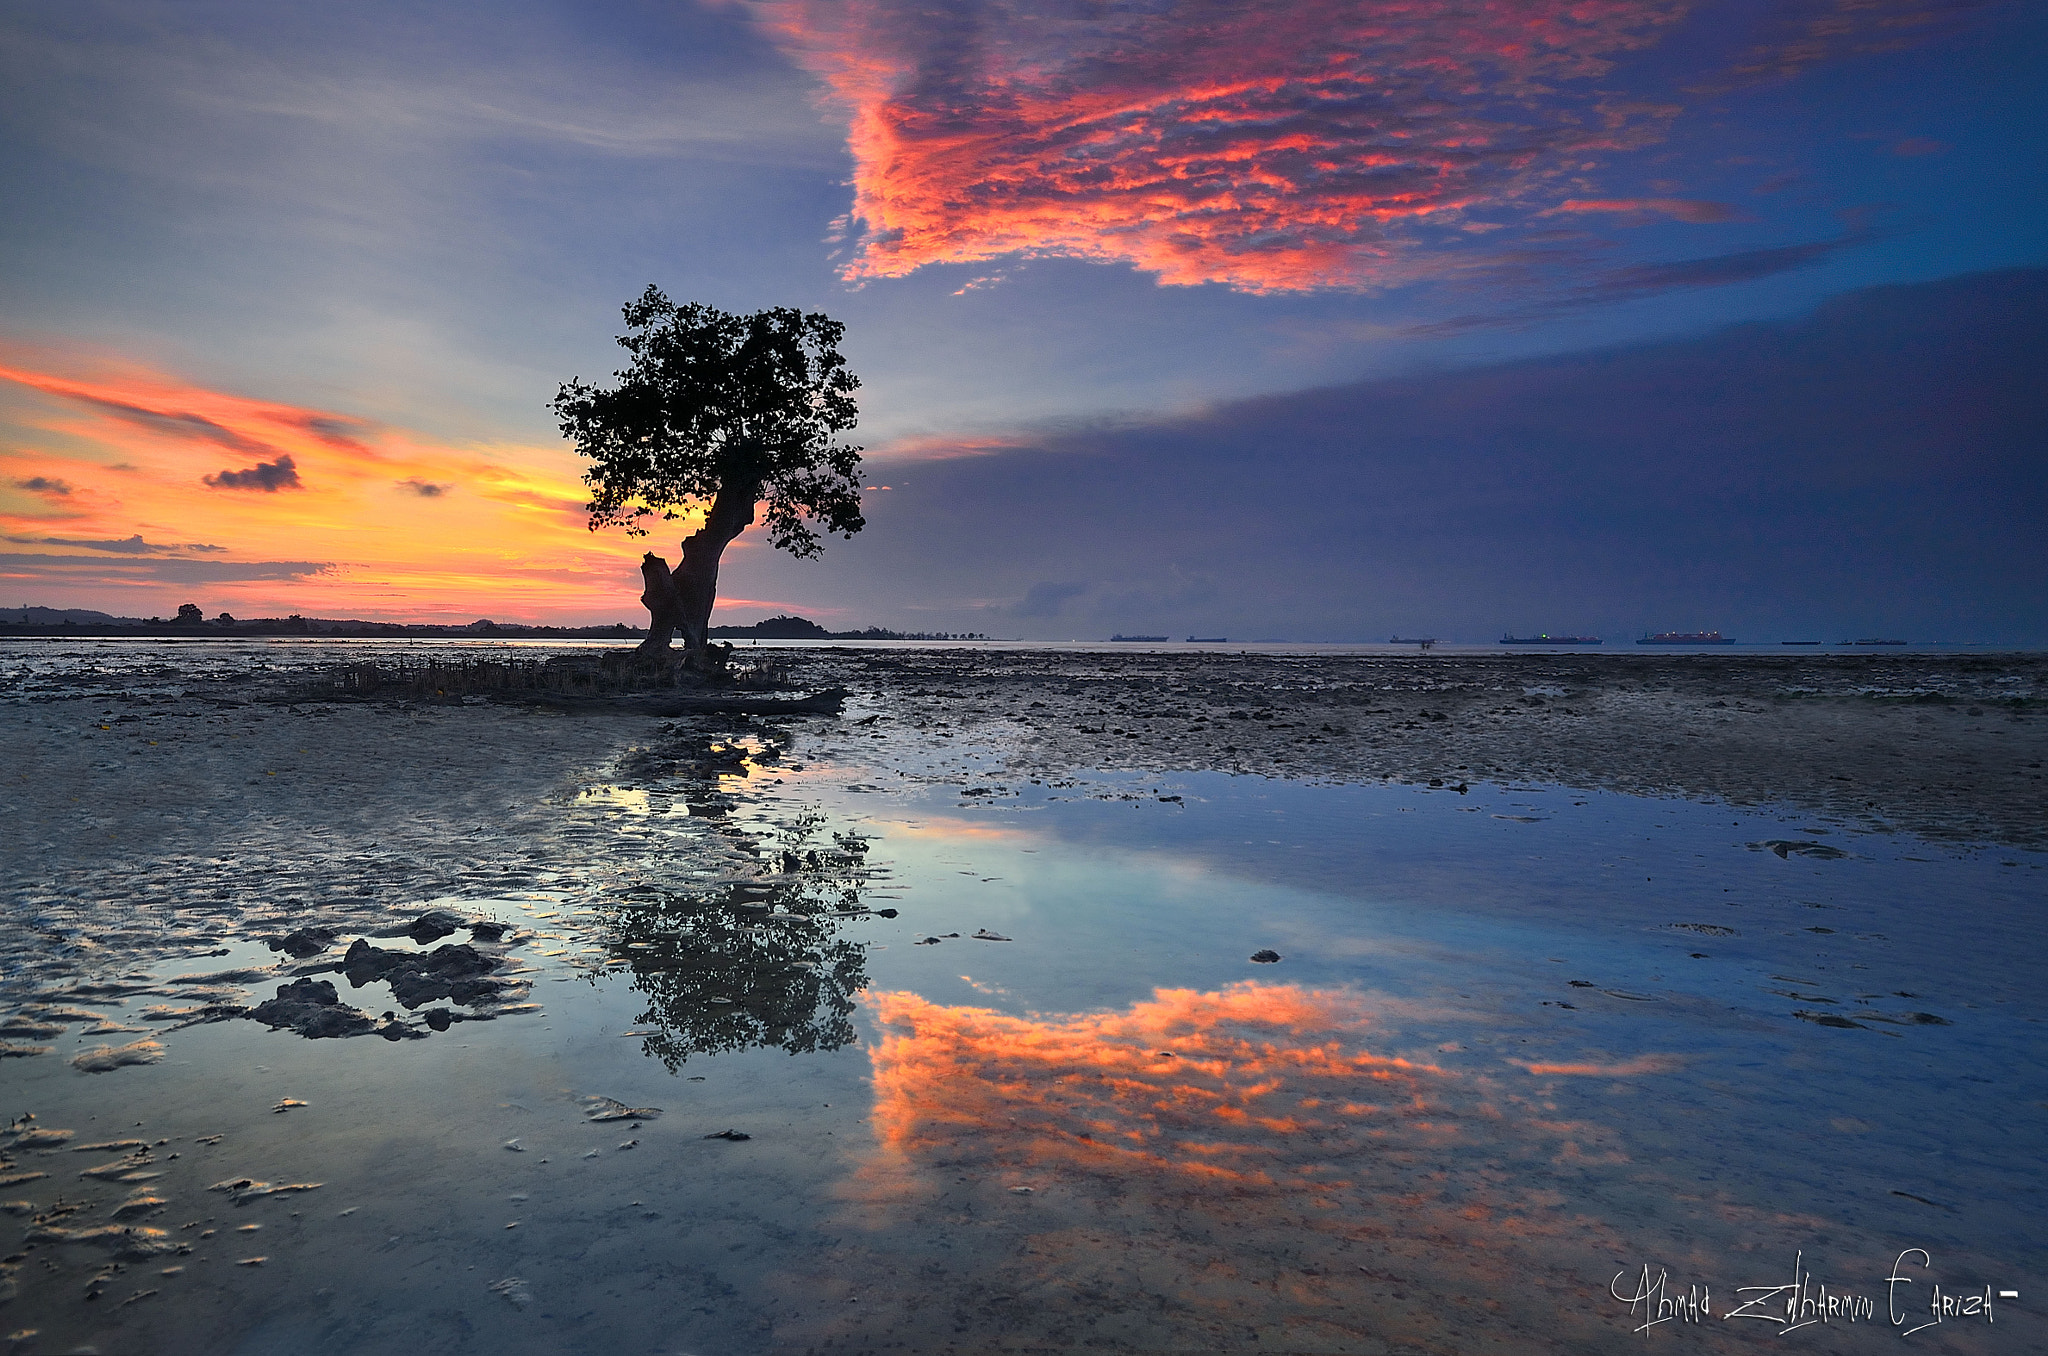 Photograph ::. Capturing Night .:: by Ahmad Zulharmin Fariza on 500px